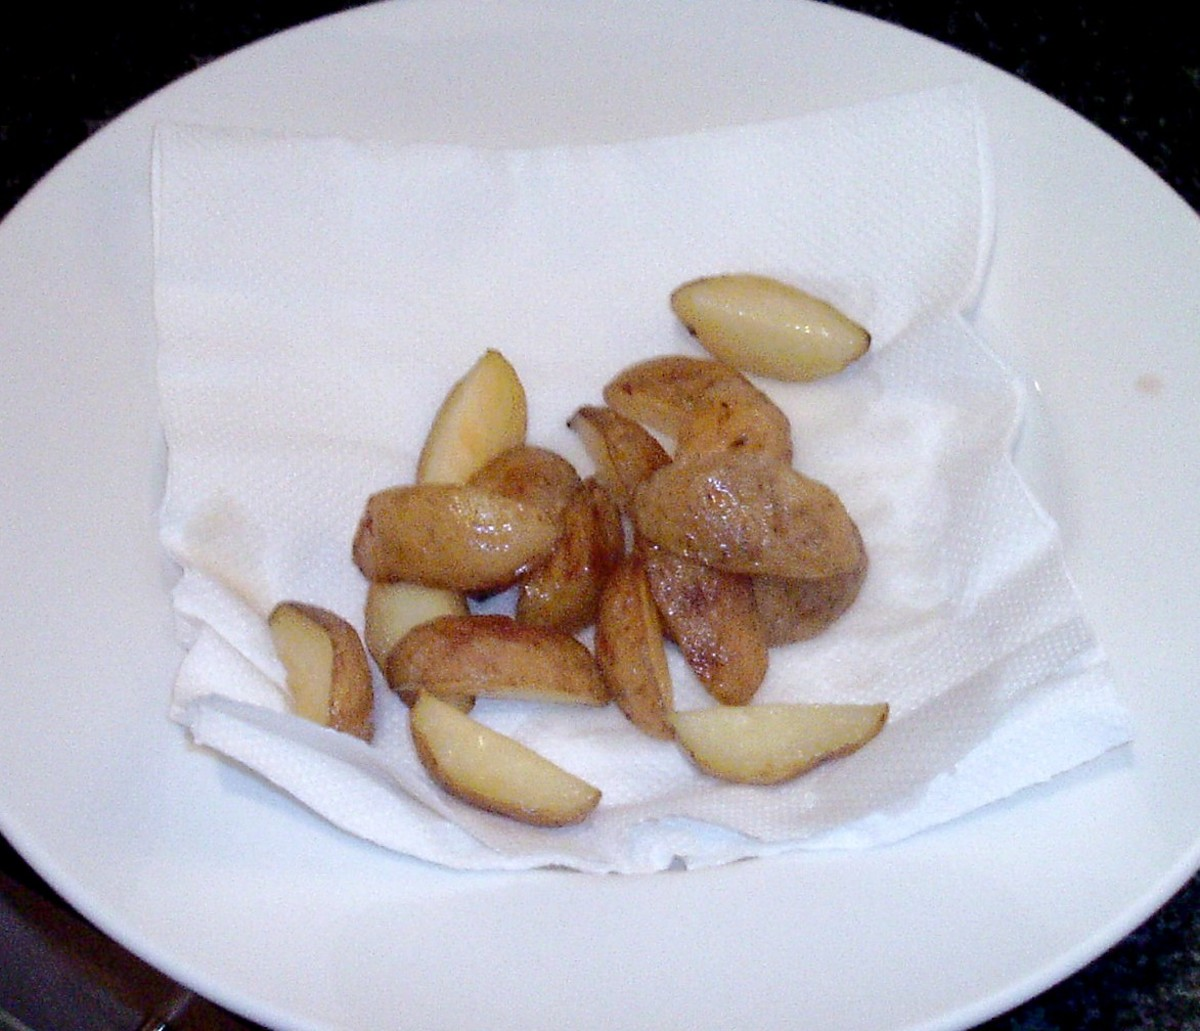 Roast potatoes are drained on kitchen paper